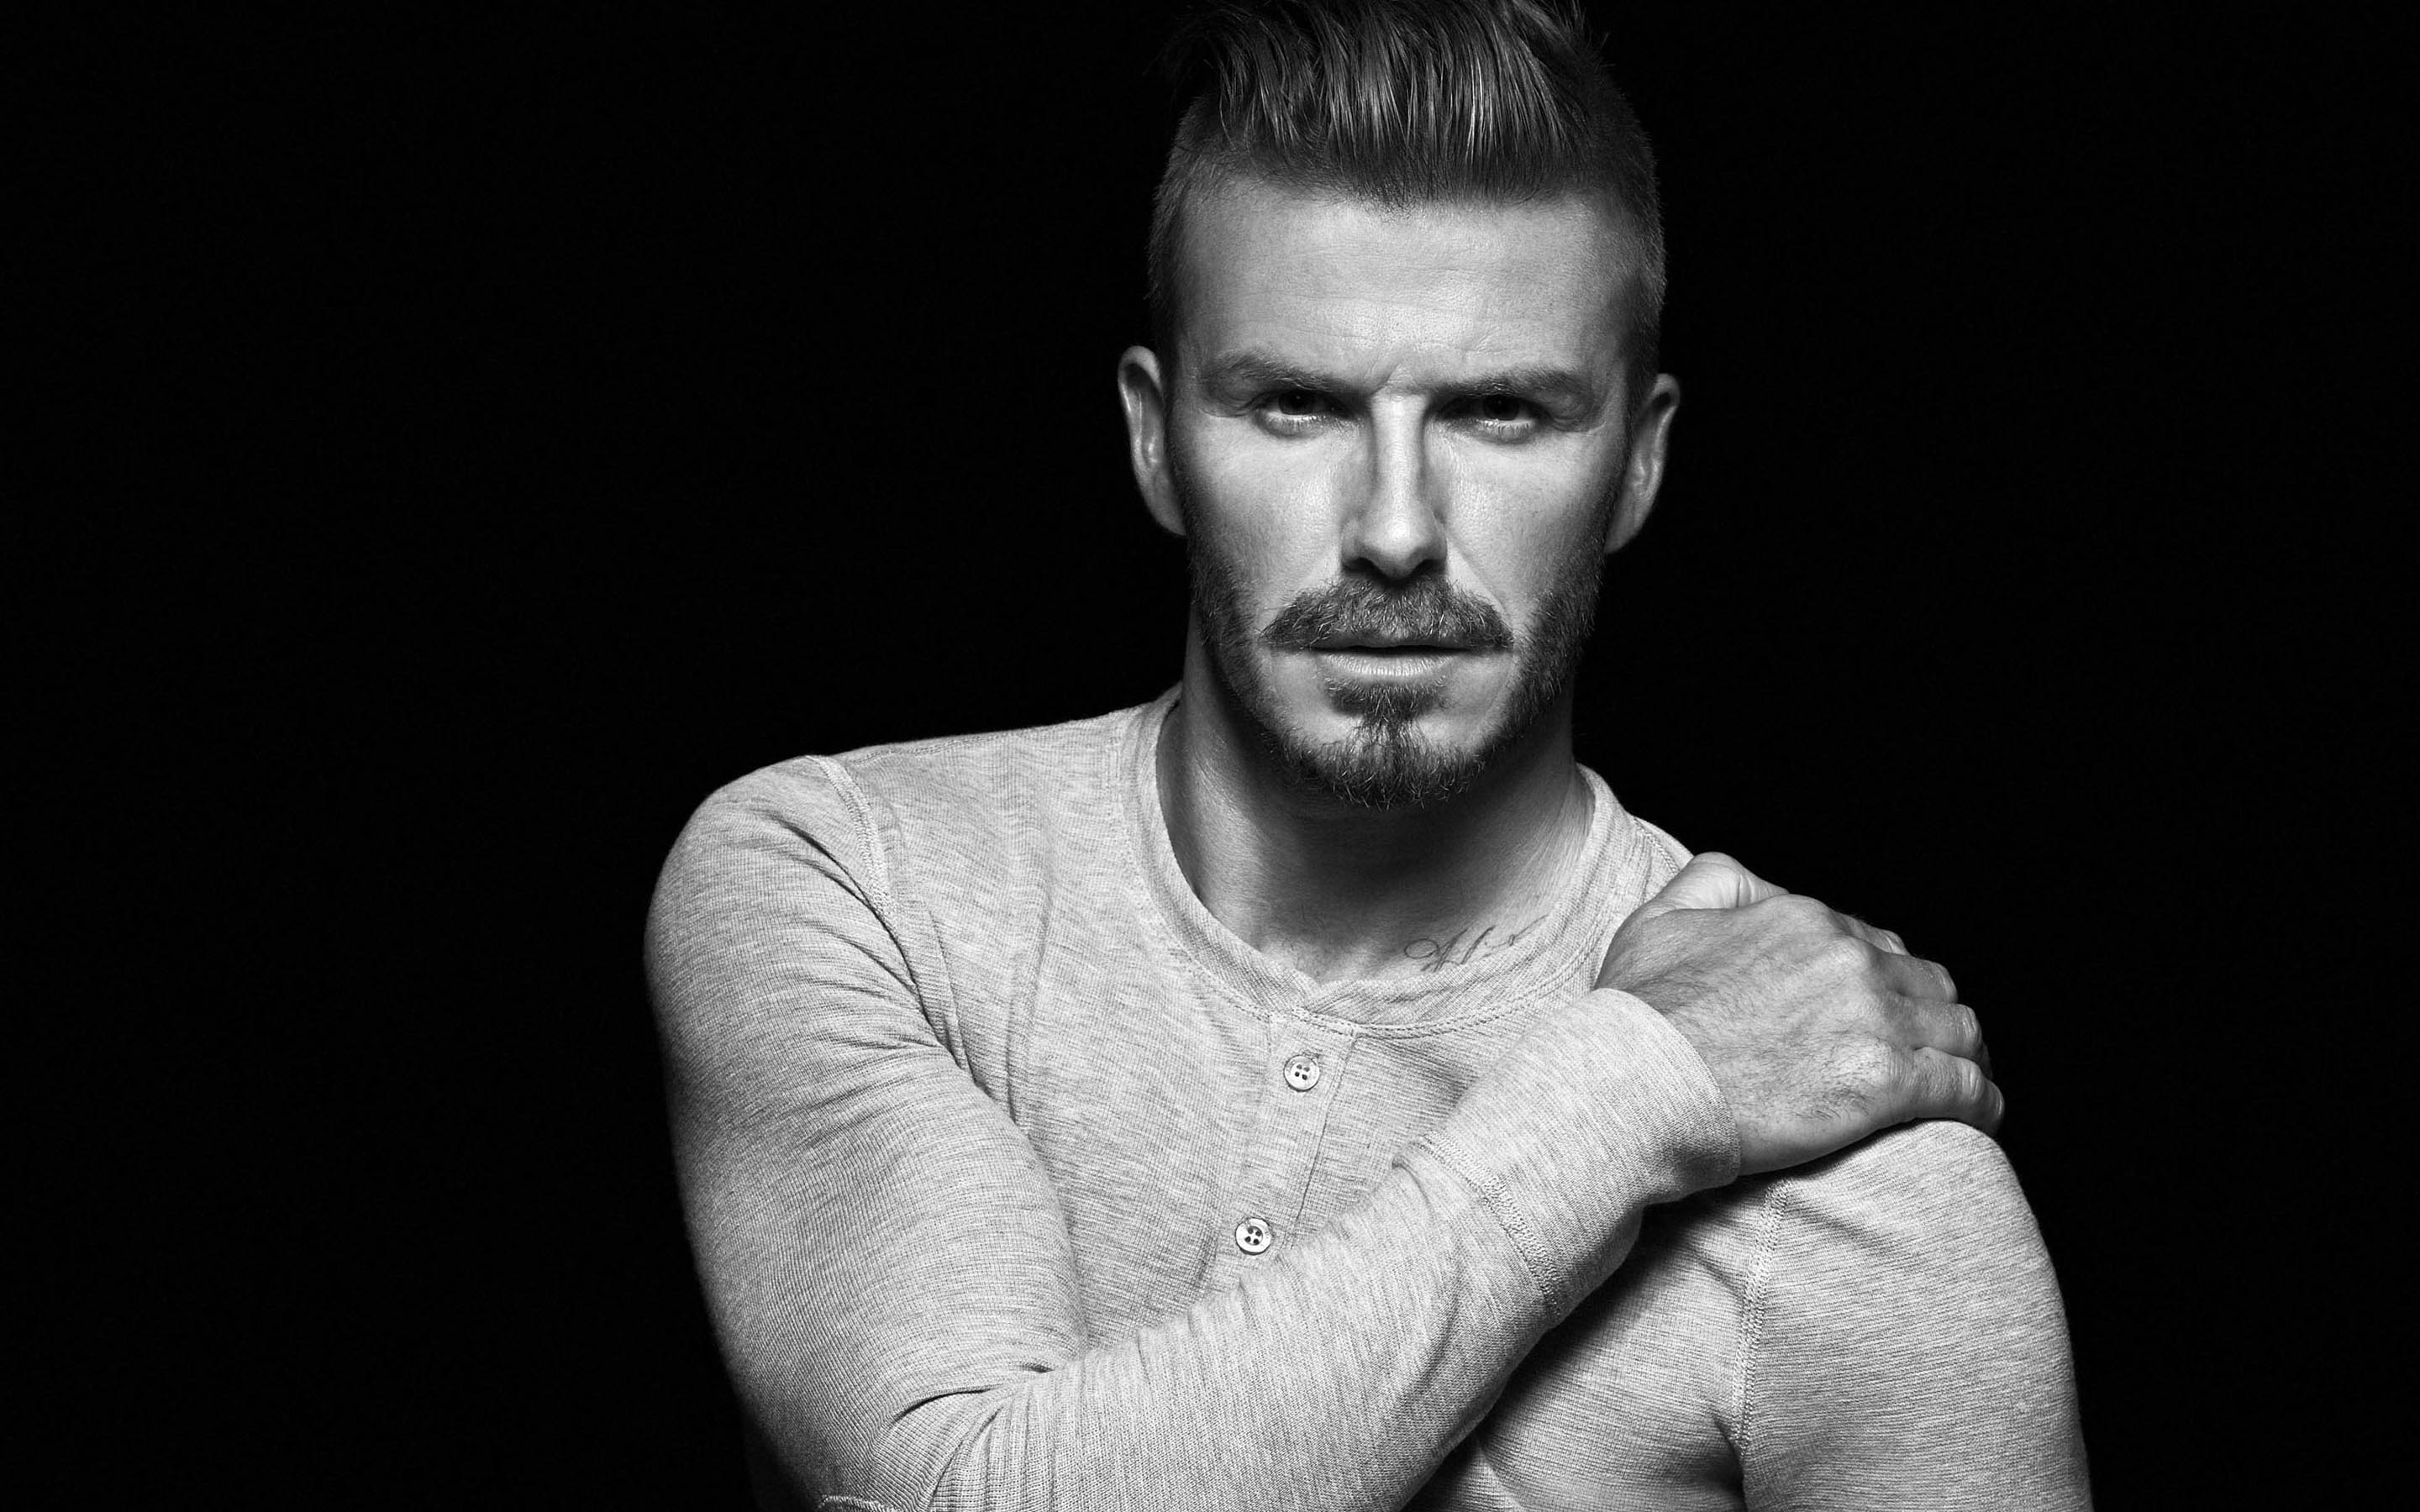 David Beckham 2014   Wallpaper High Definition High Quality 2880x1800